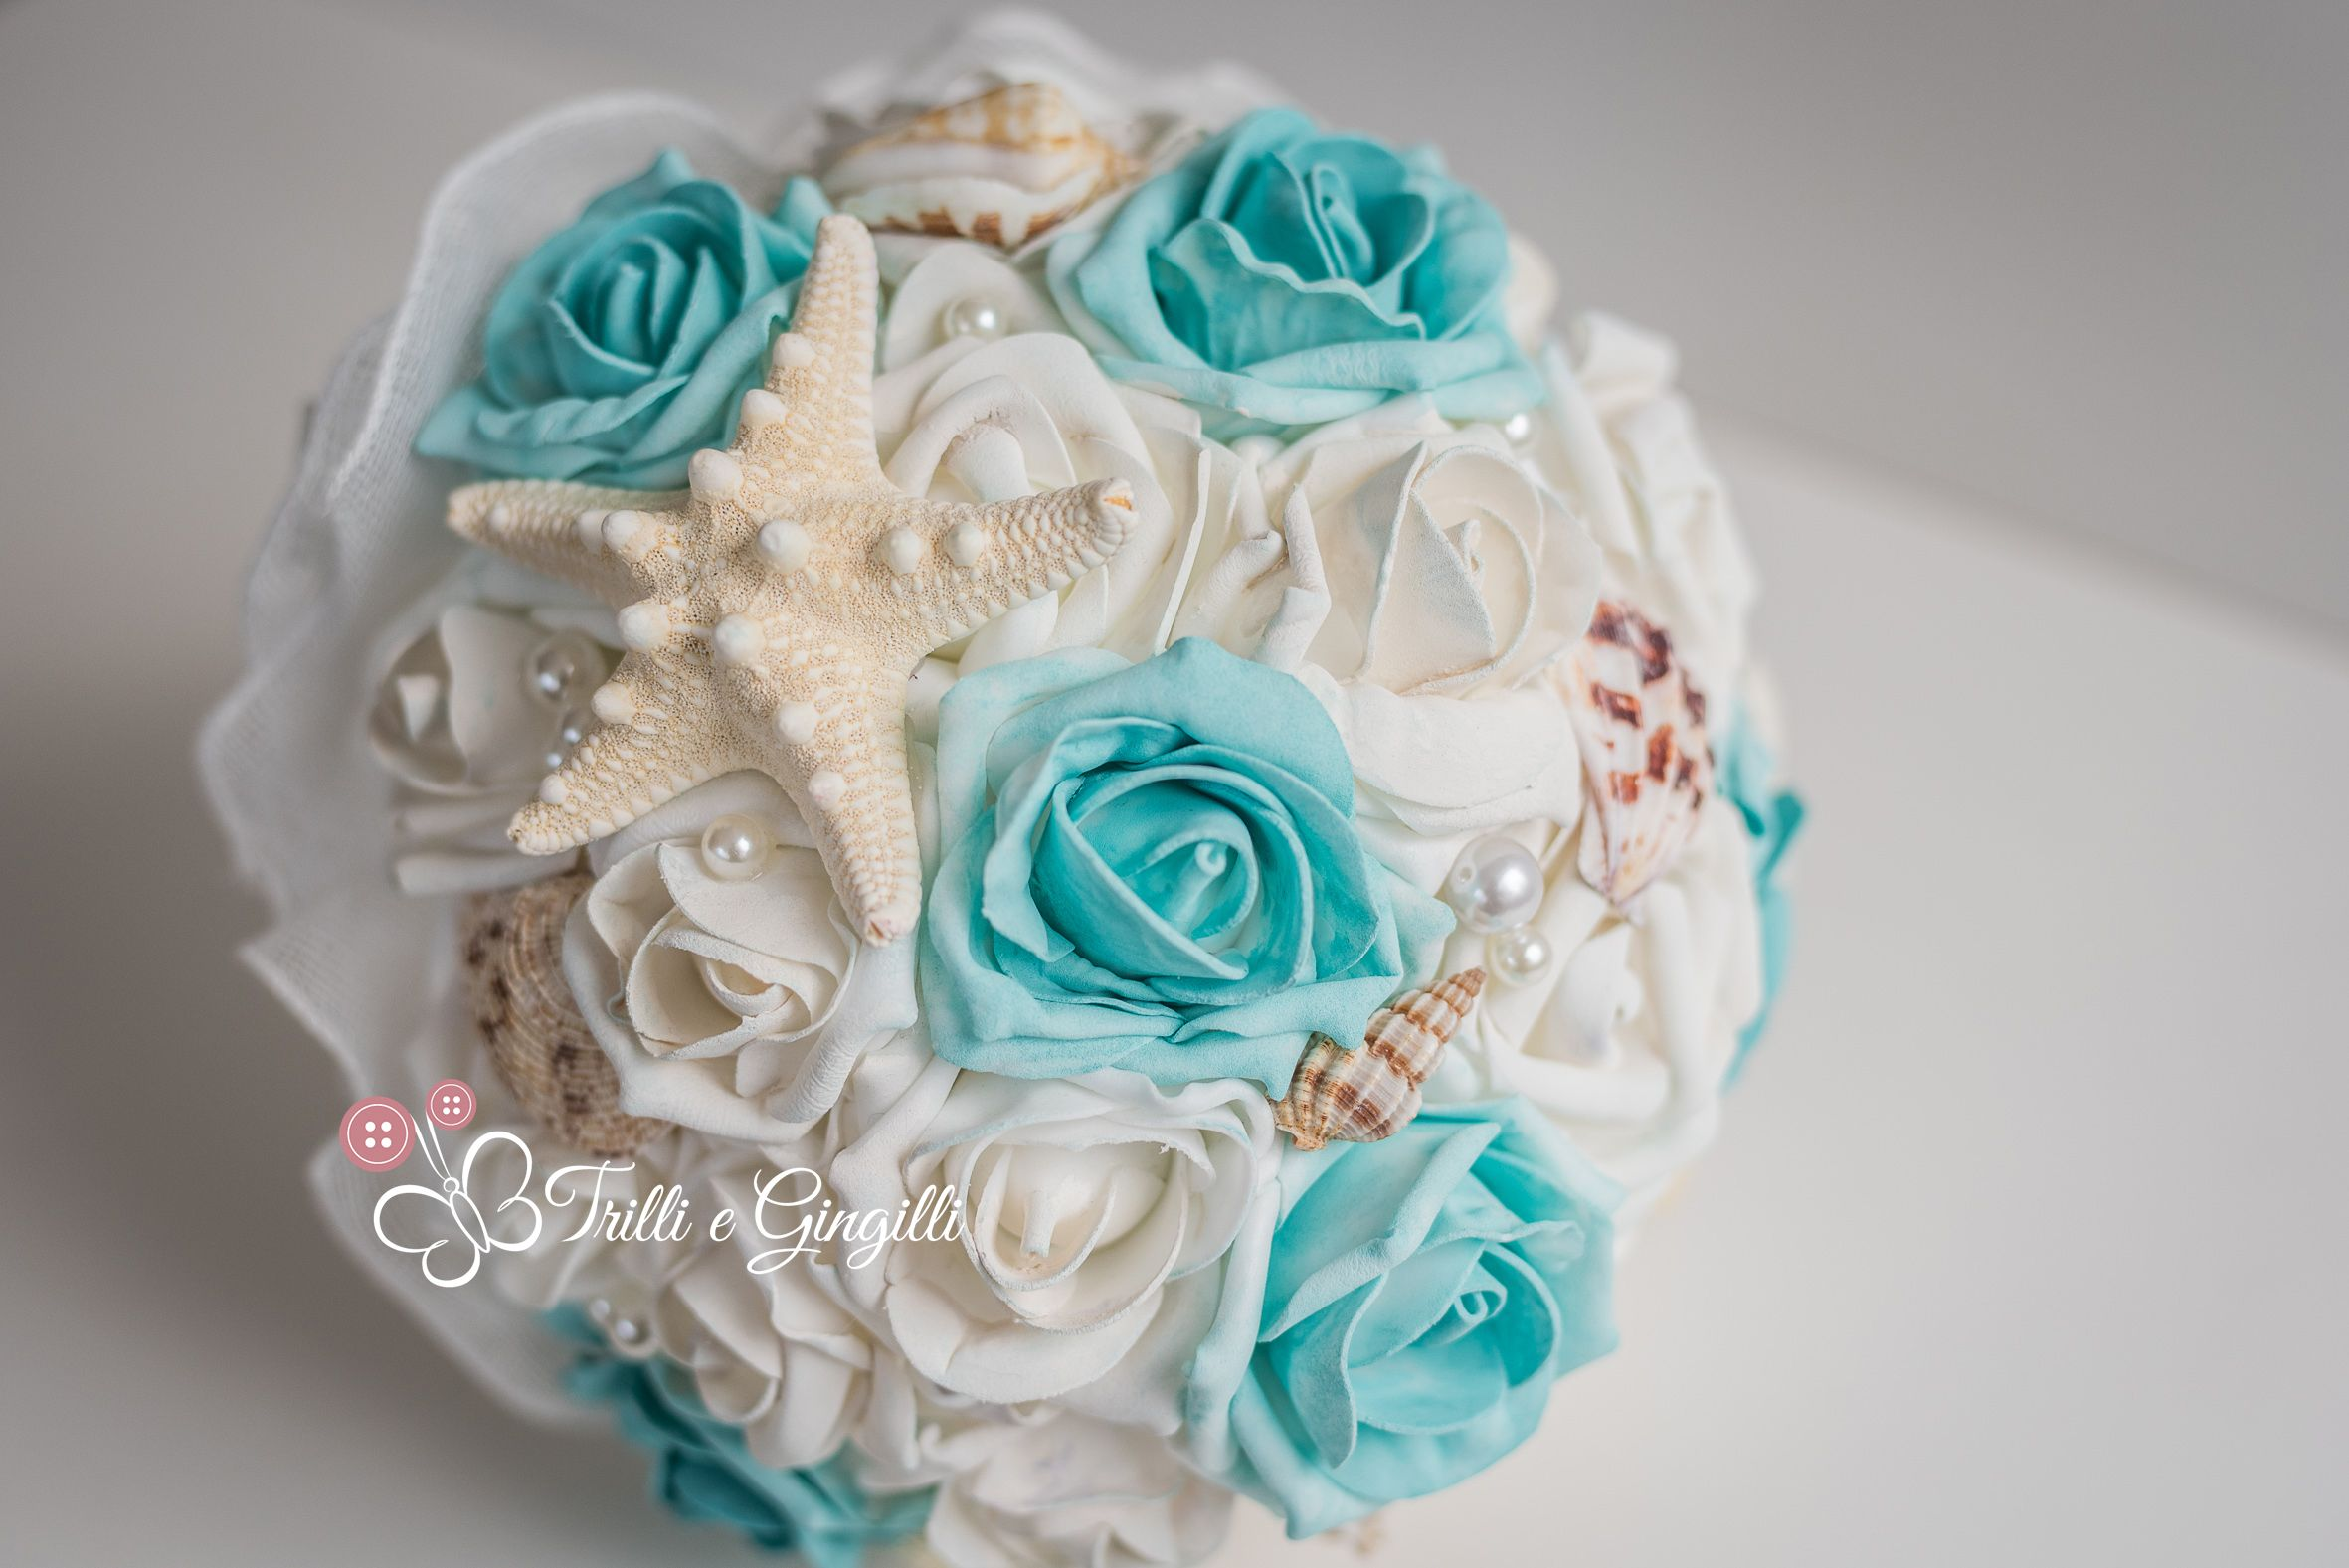 Bouquet Sposa Tiffany.Teal Wedding Bouquet Shells By Trilli E Gingilli Bouquet Tema